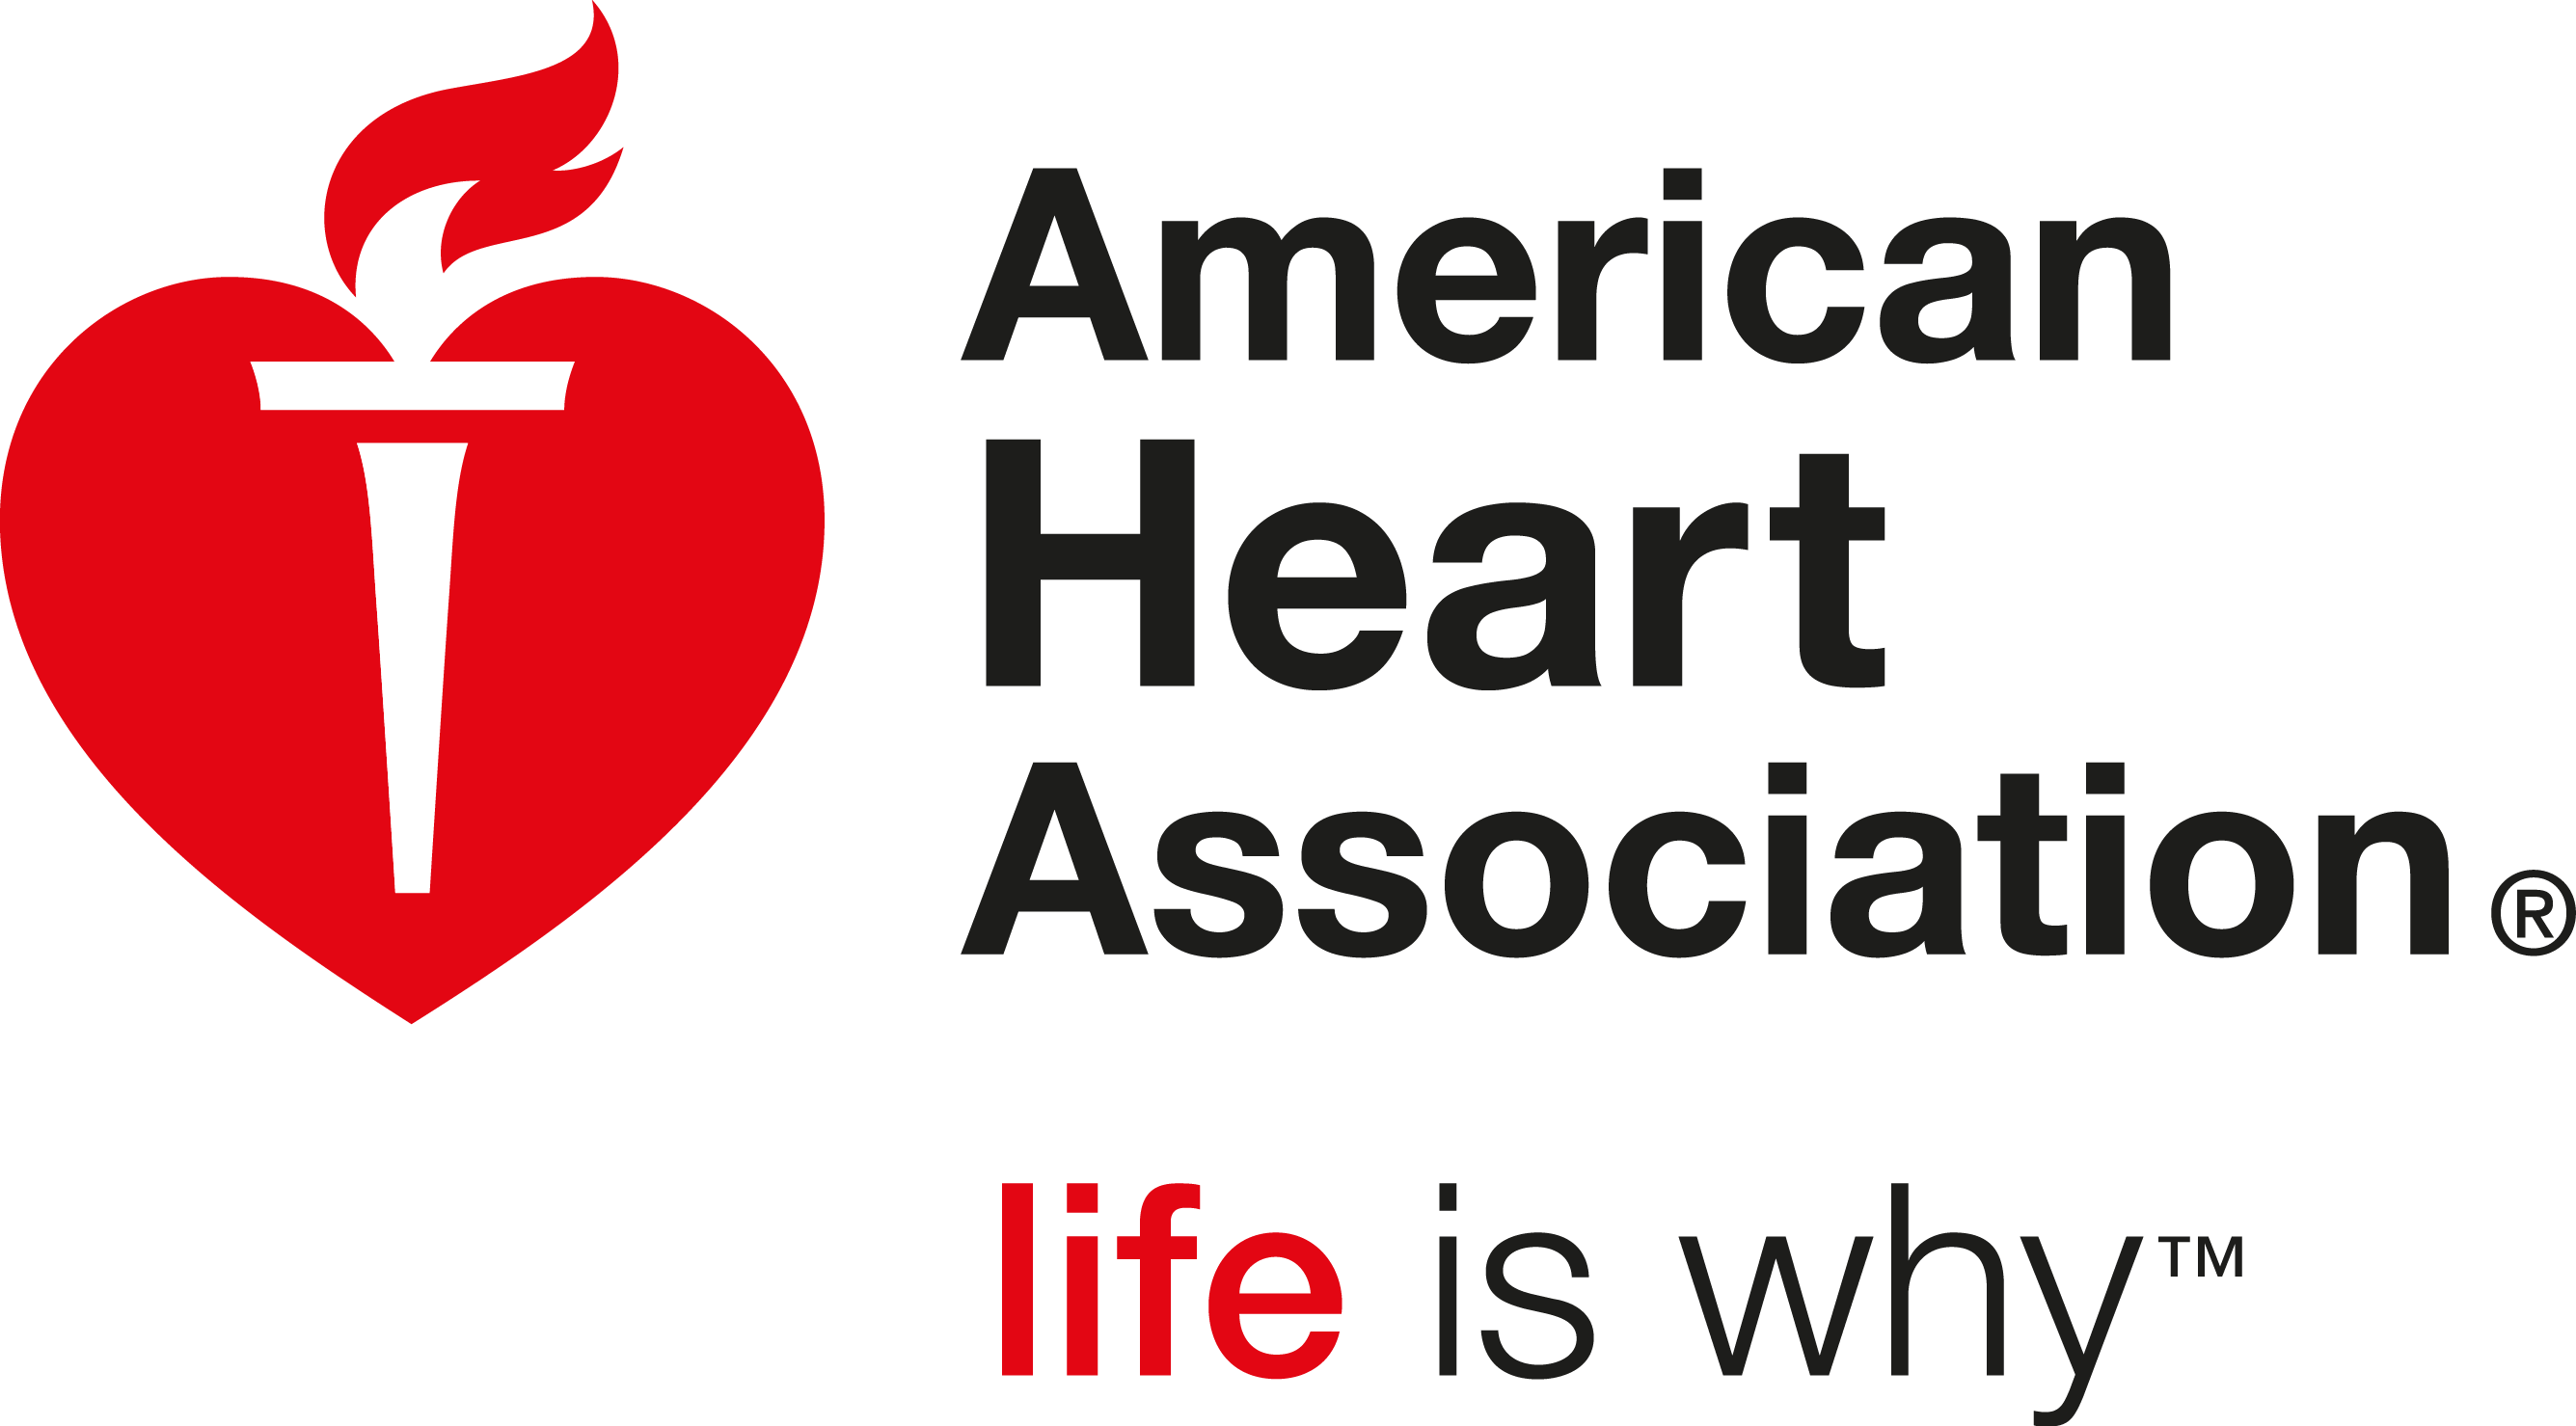 American Hearth Association Logo   AHA